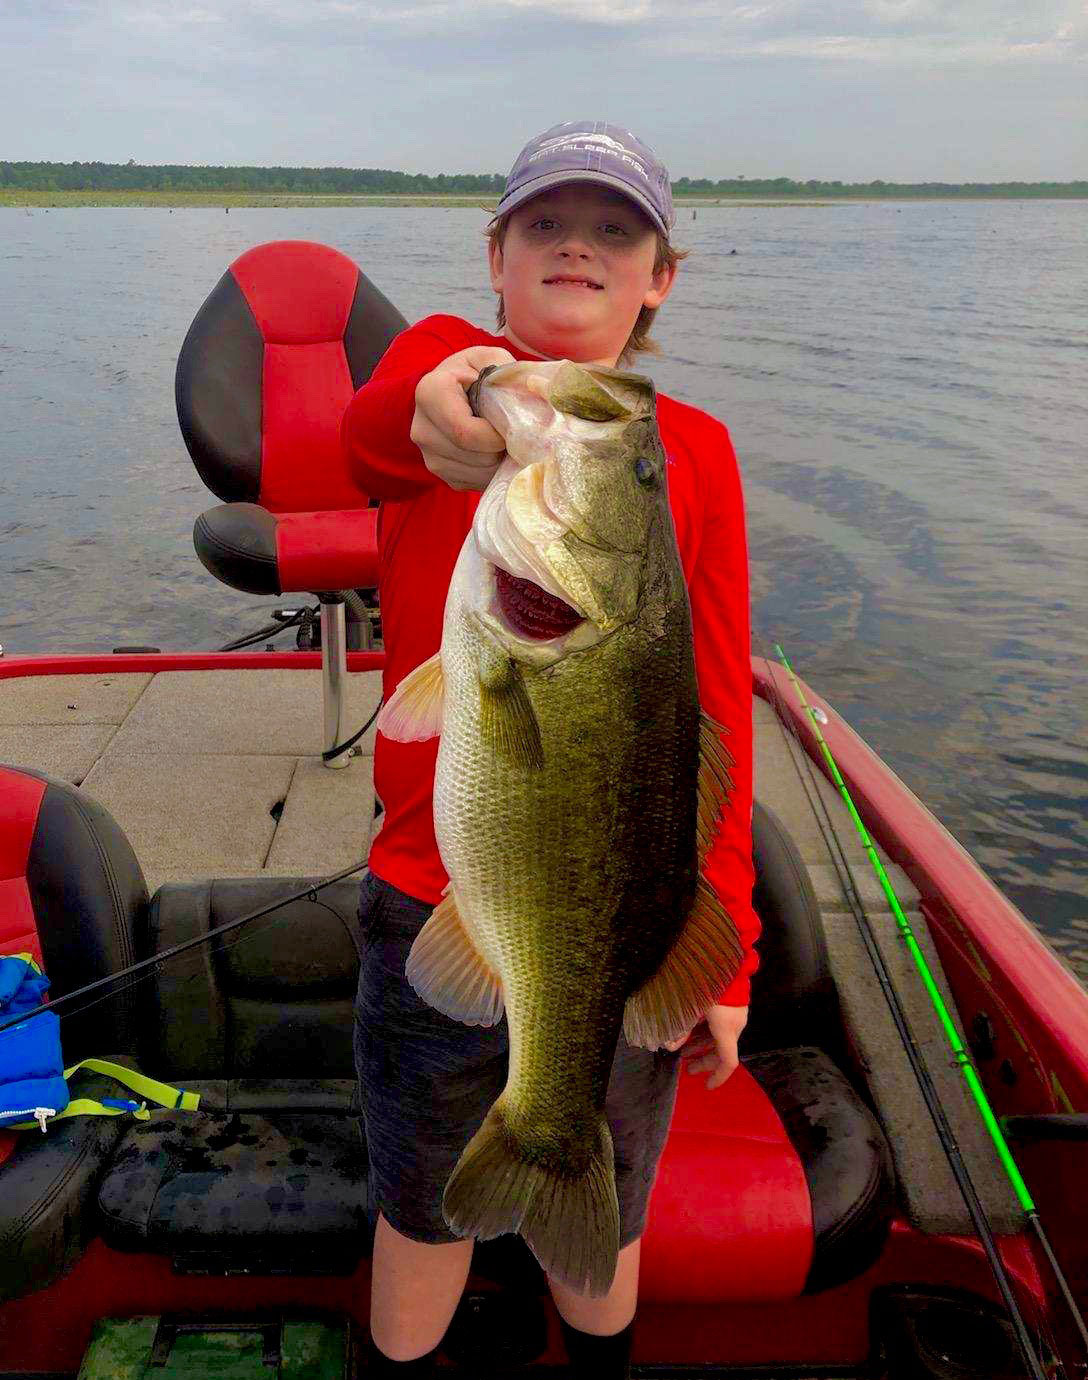 A new crop of young anglers got to fish the reservoir this time around, like Dylan Bachot, who caught this Bussey Brake brute.